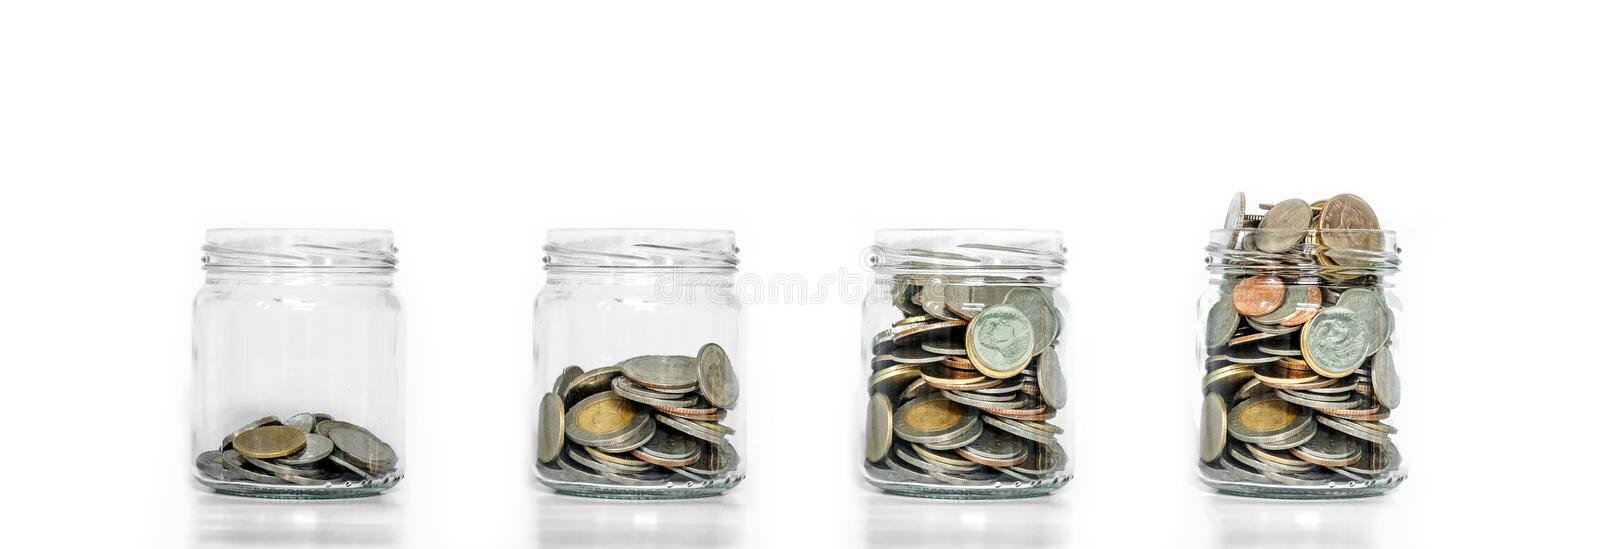 Money saving, glass jar arrange with coins inside growing, on white background stock images